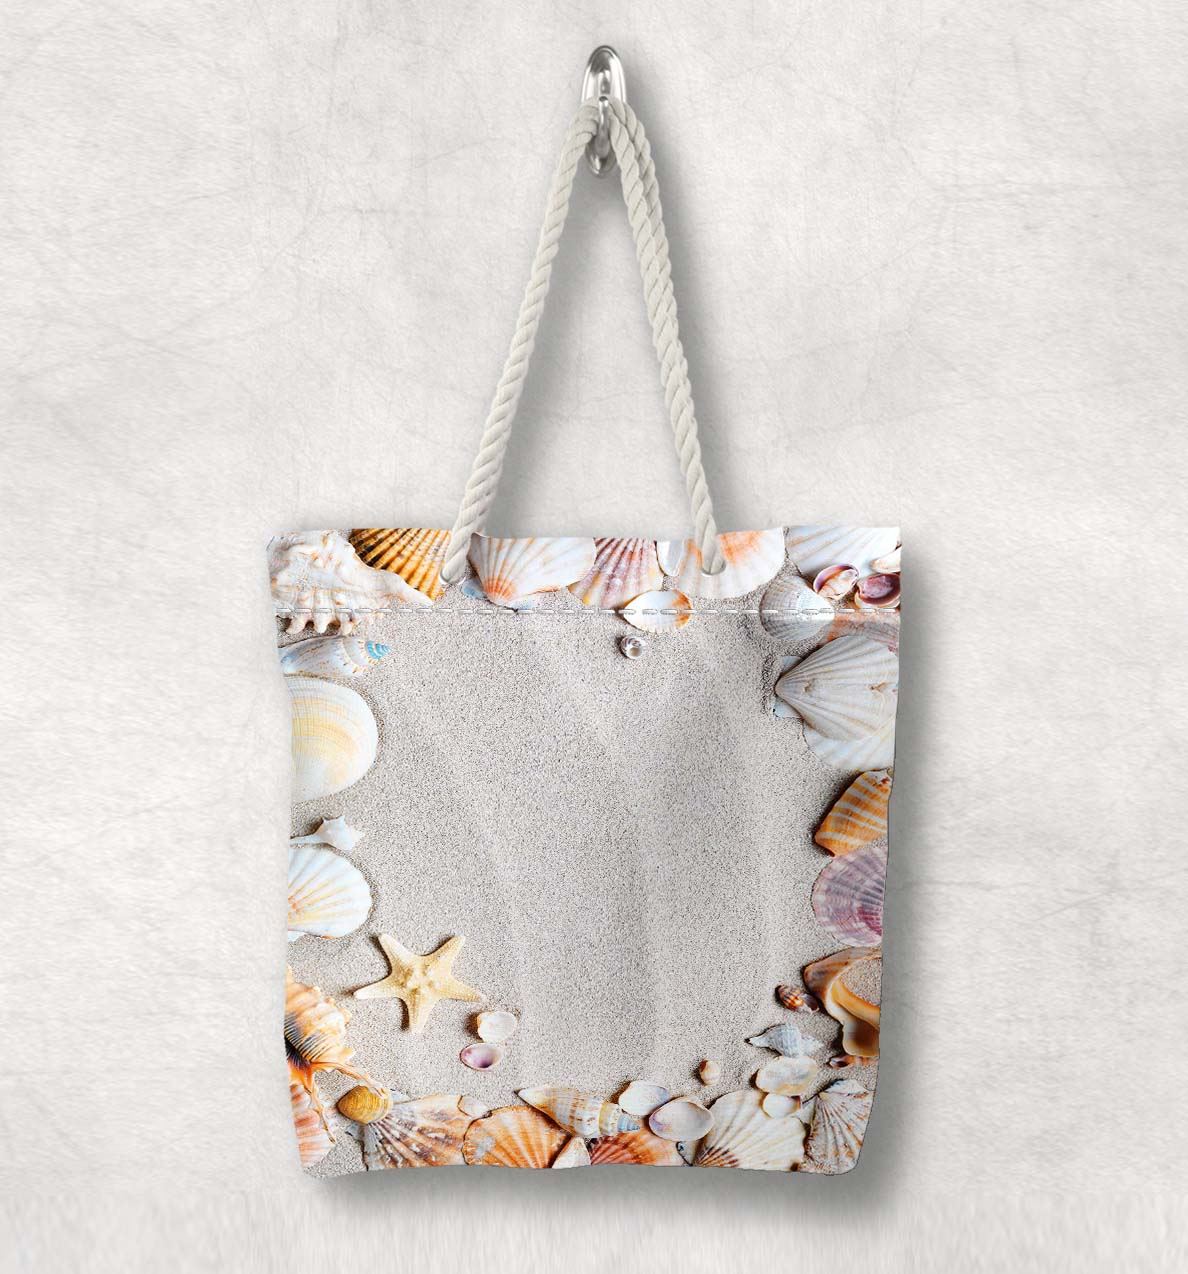 Else Tropical Beach Sand On Sea Shells  New Fashion White Rope Handle Canvas Bag Cotton Canvas Zippered Tote Bag Shoulder Bag